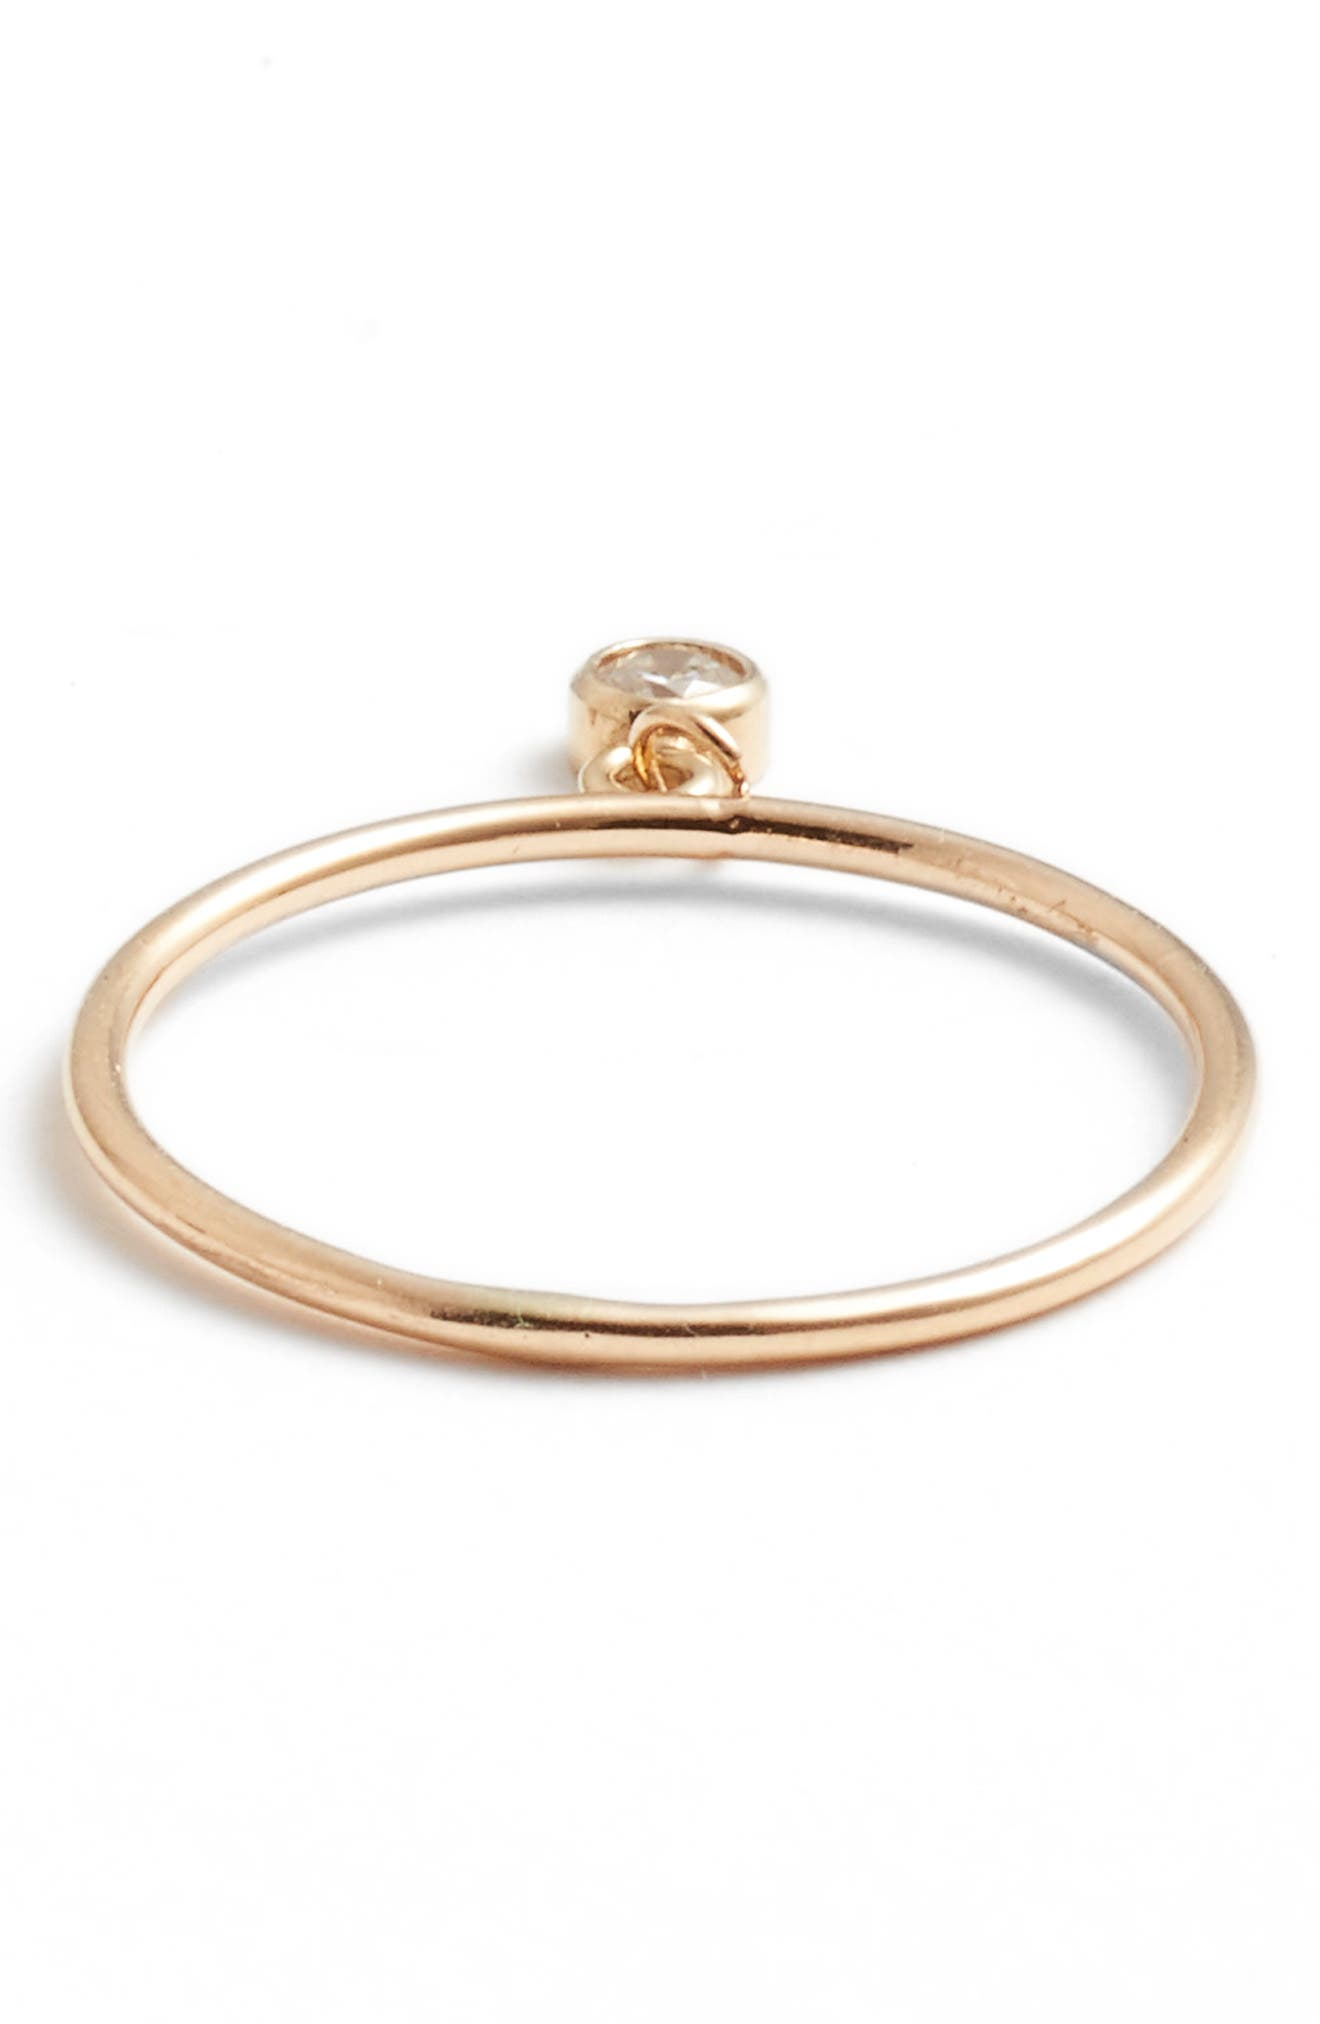 ZOË CHICCO, Dangling Diamond Ring, Alternate thumbnail 3, color, YELLOW GOLD